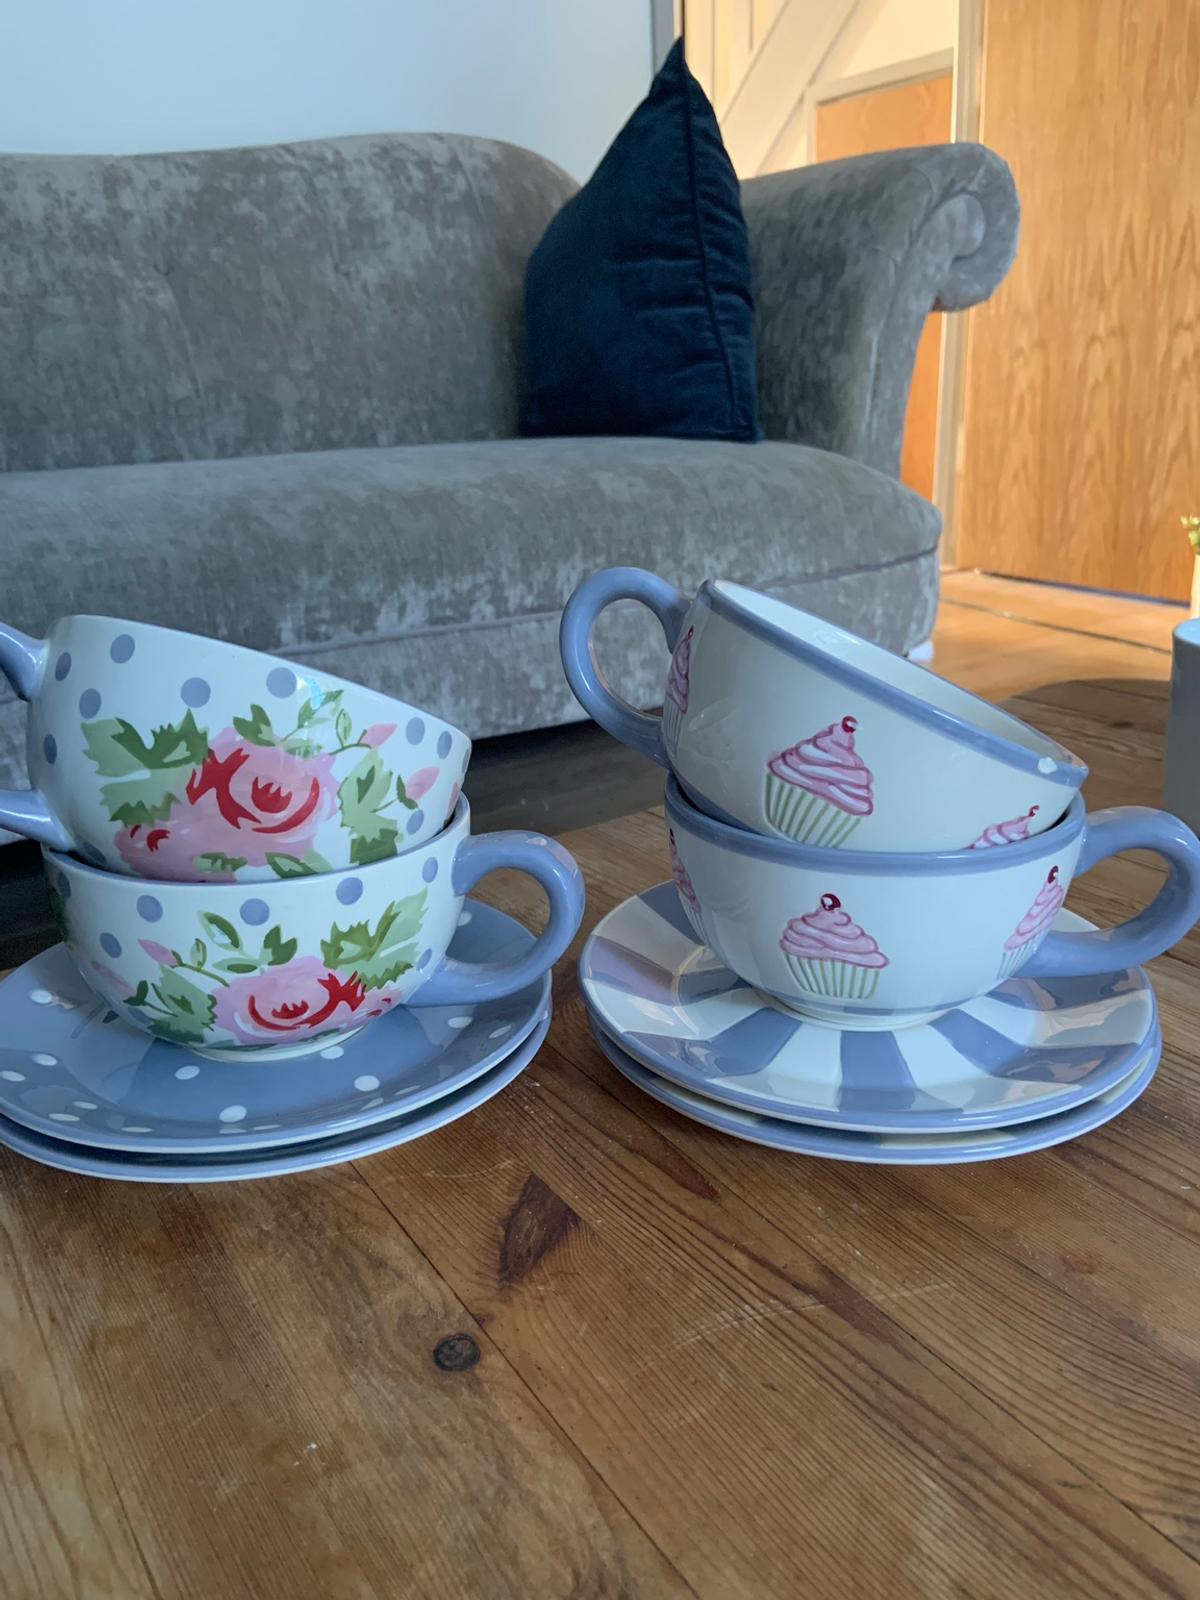 Large Mugs A Saucer In Rh15 Hill For 2 00 For Sale Shpock